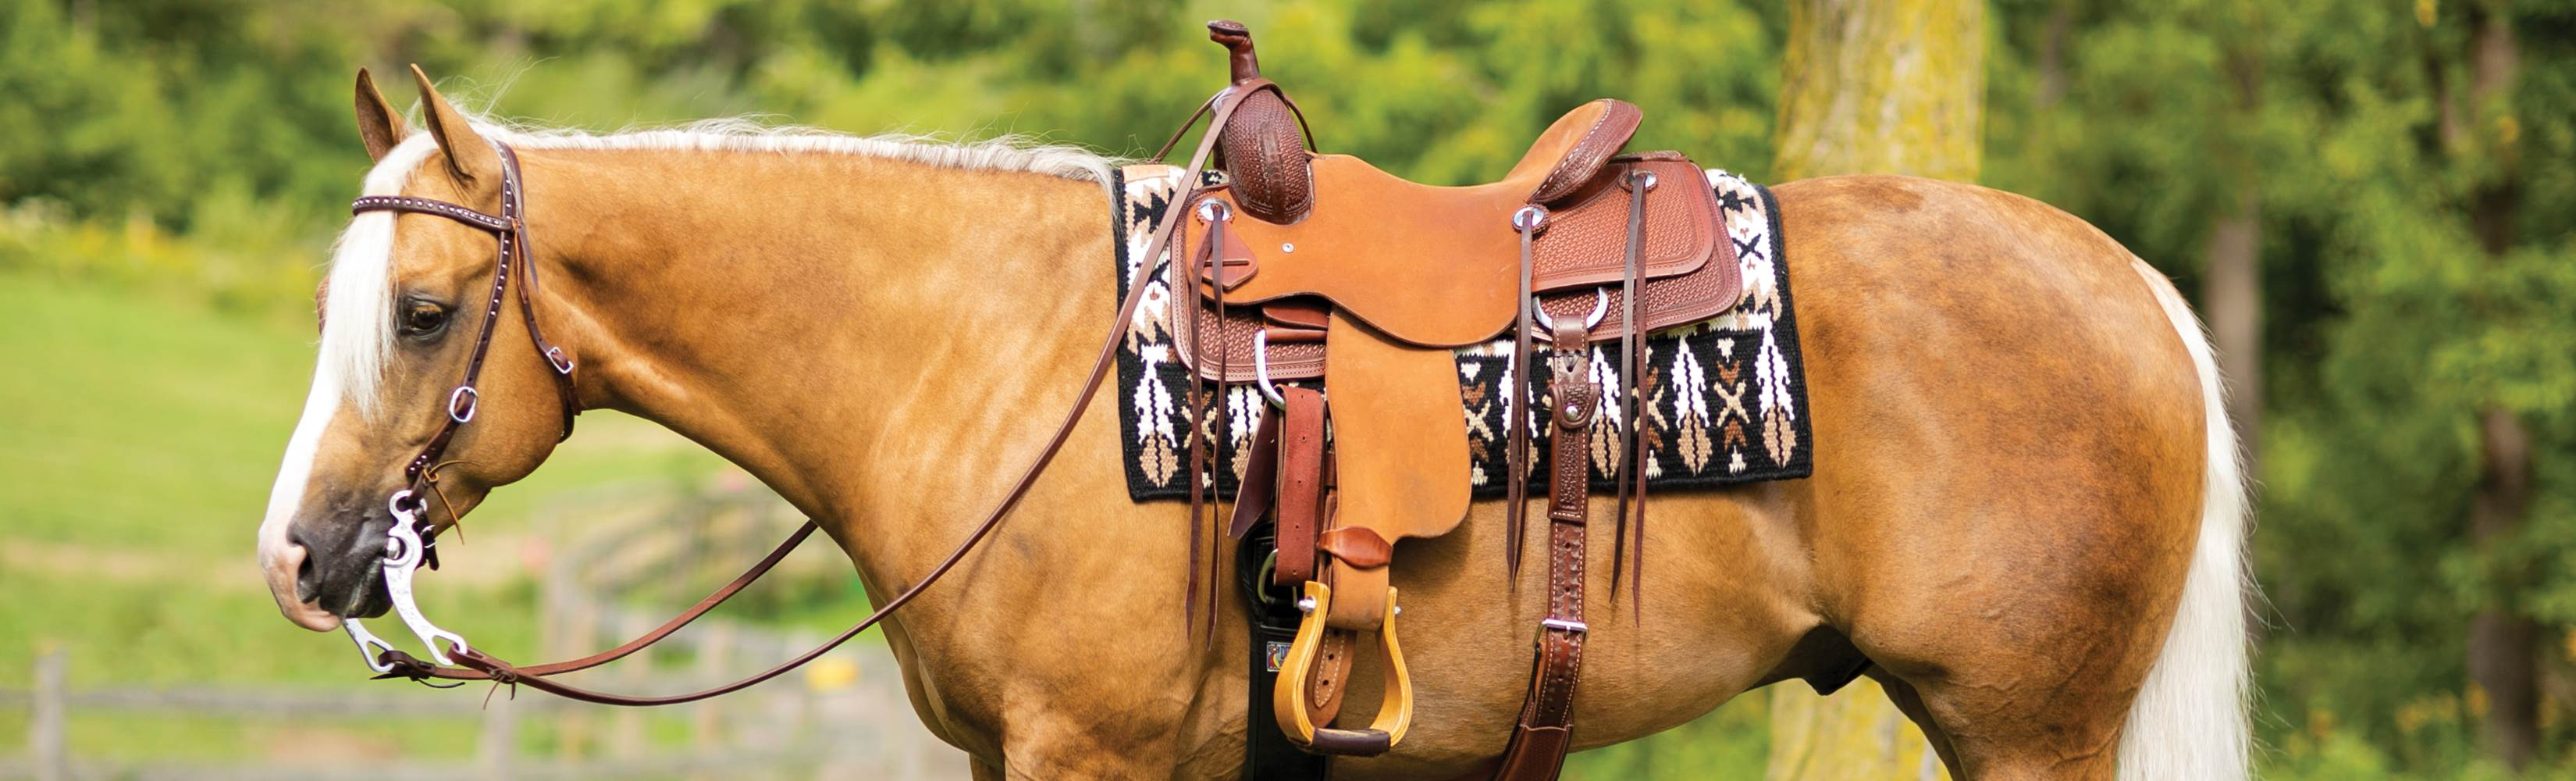 What will be the Western Saddle's main use?